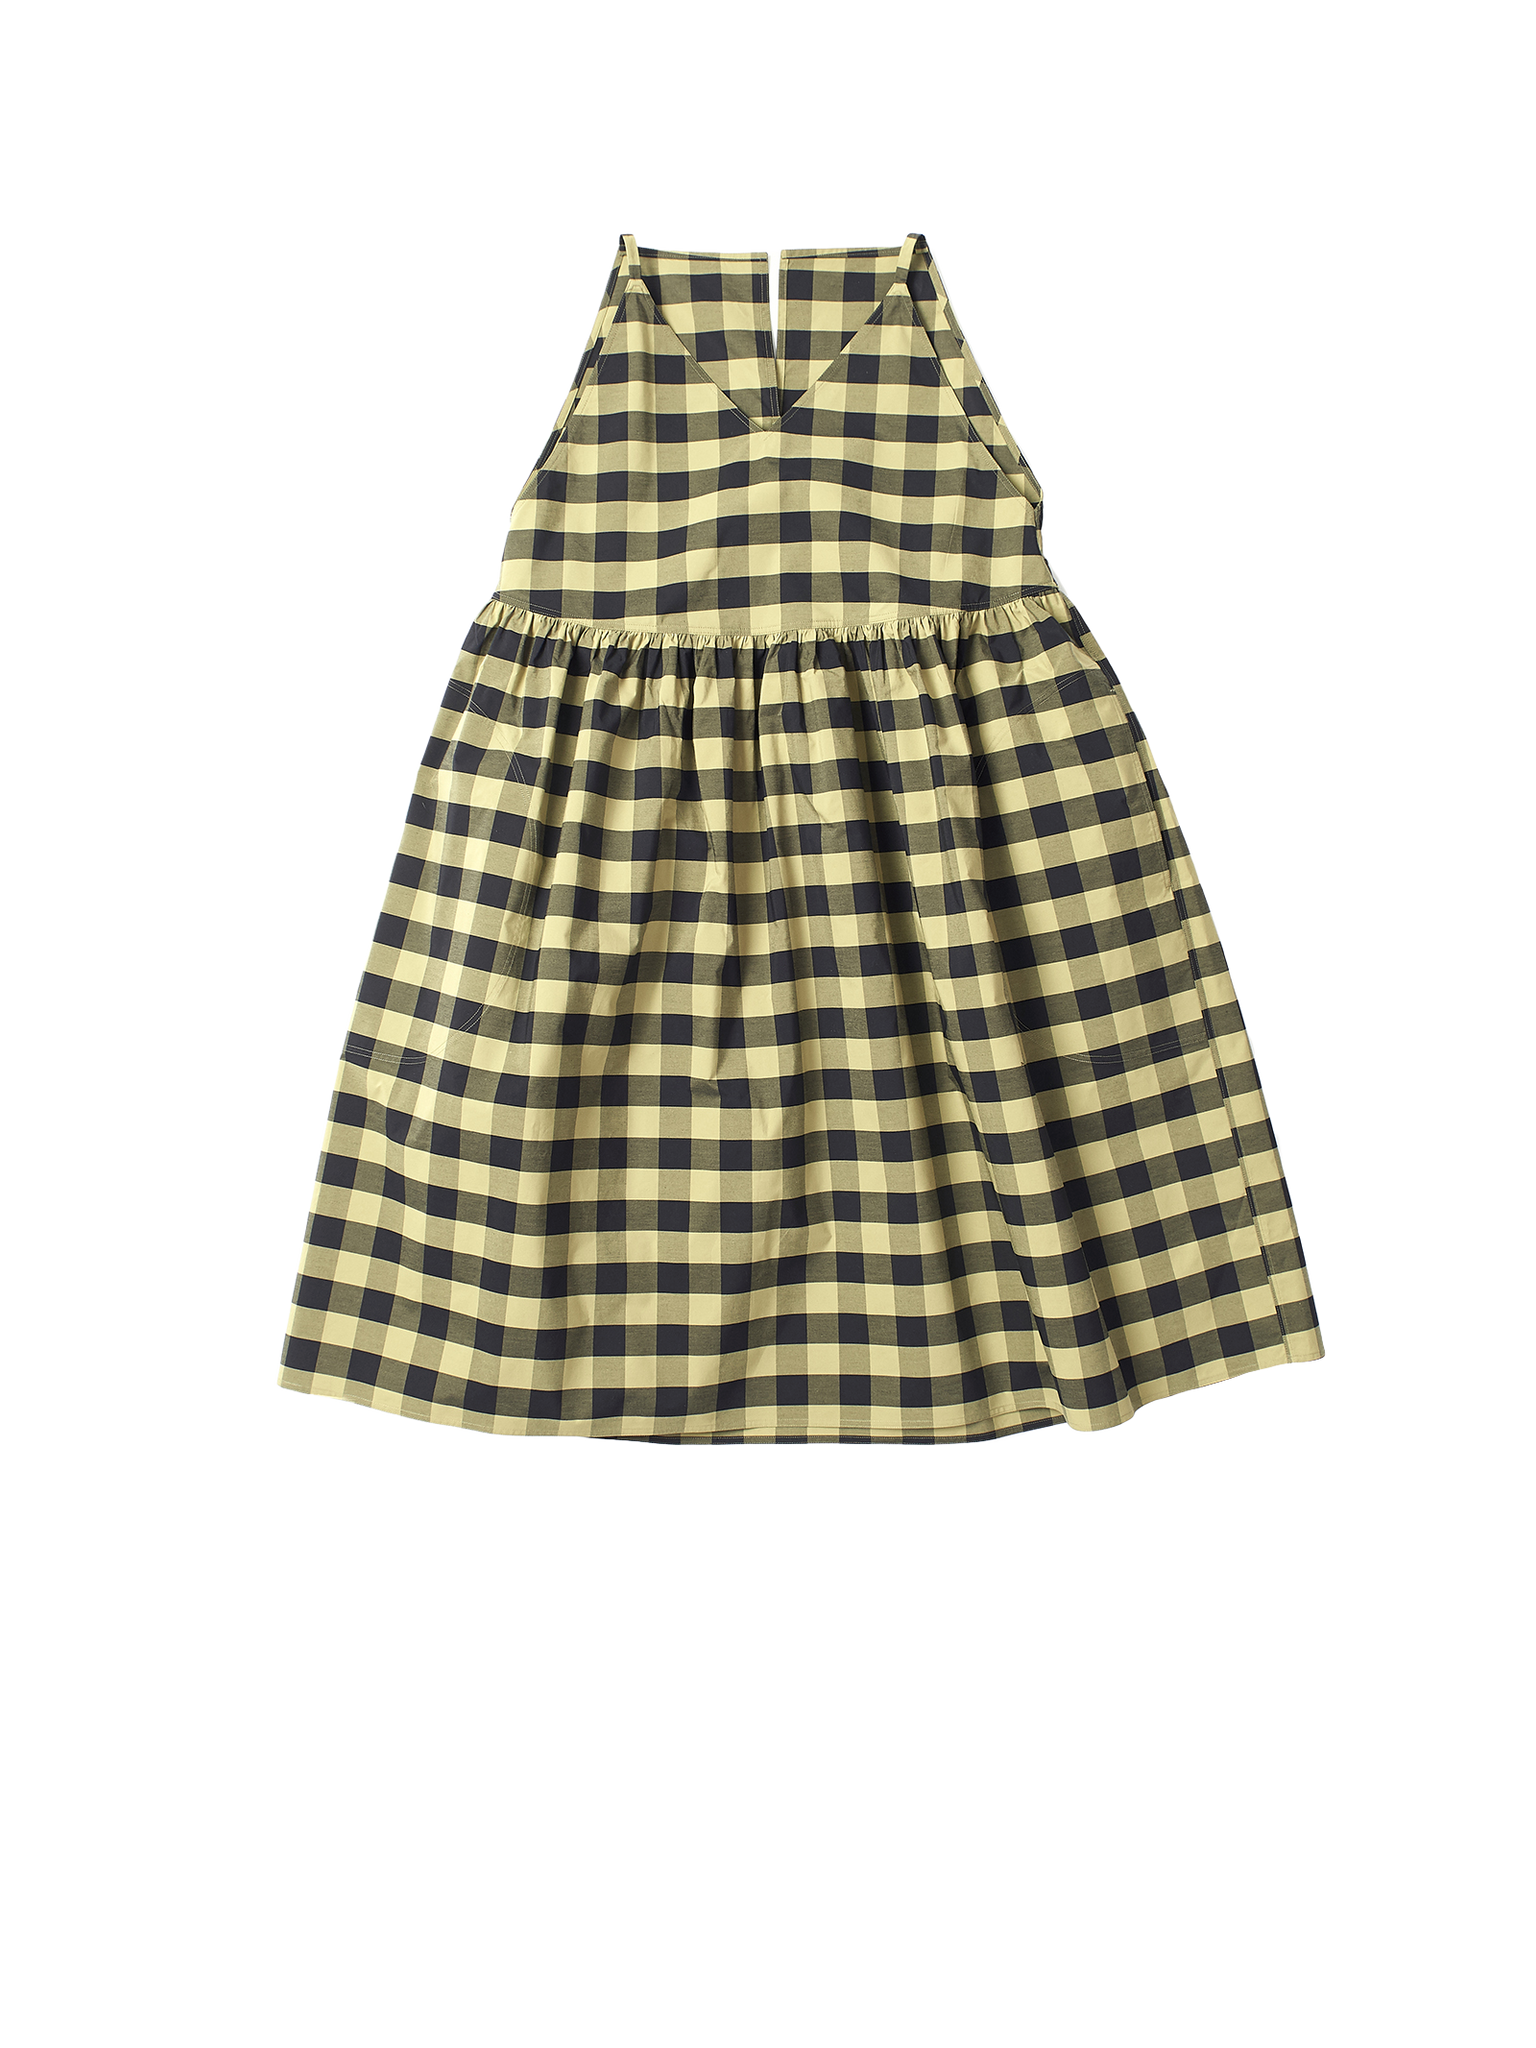 green and black check dress